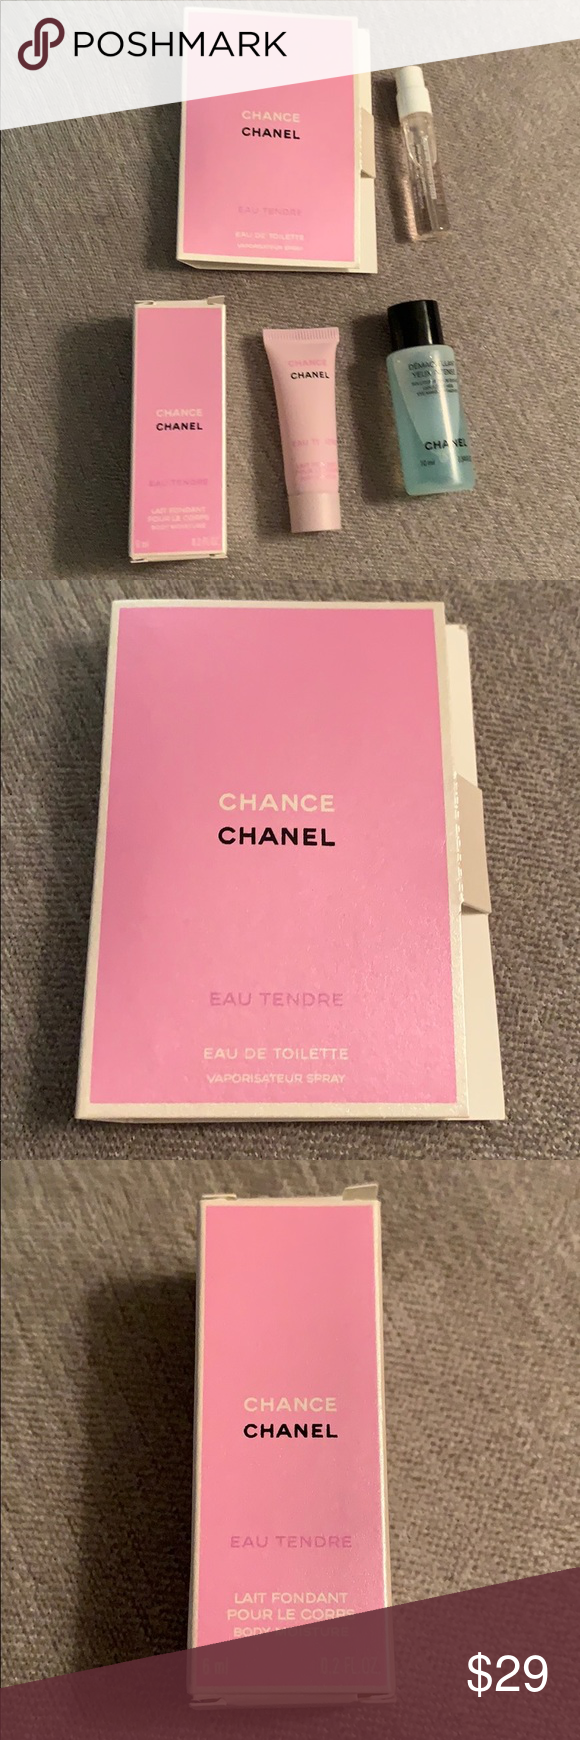 CHANEL FRAGRANCE, BODY LOTION, EYE MAKEUP REMOVER